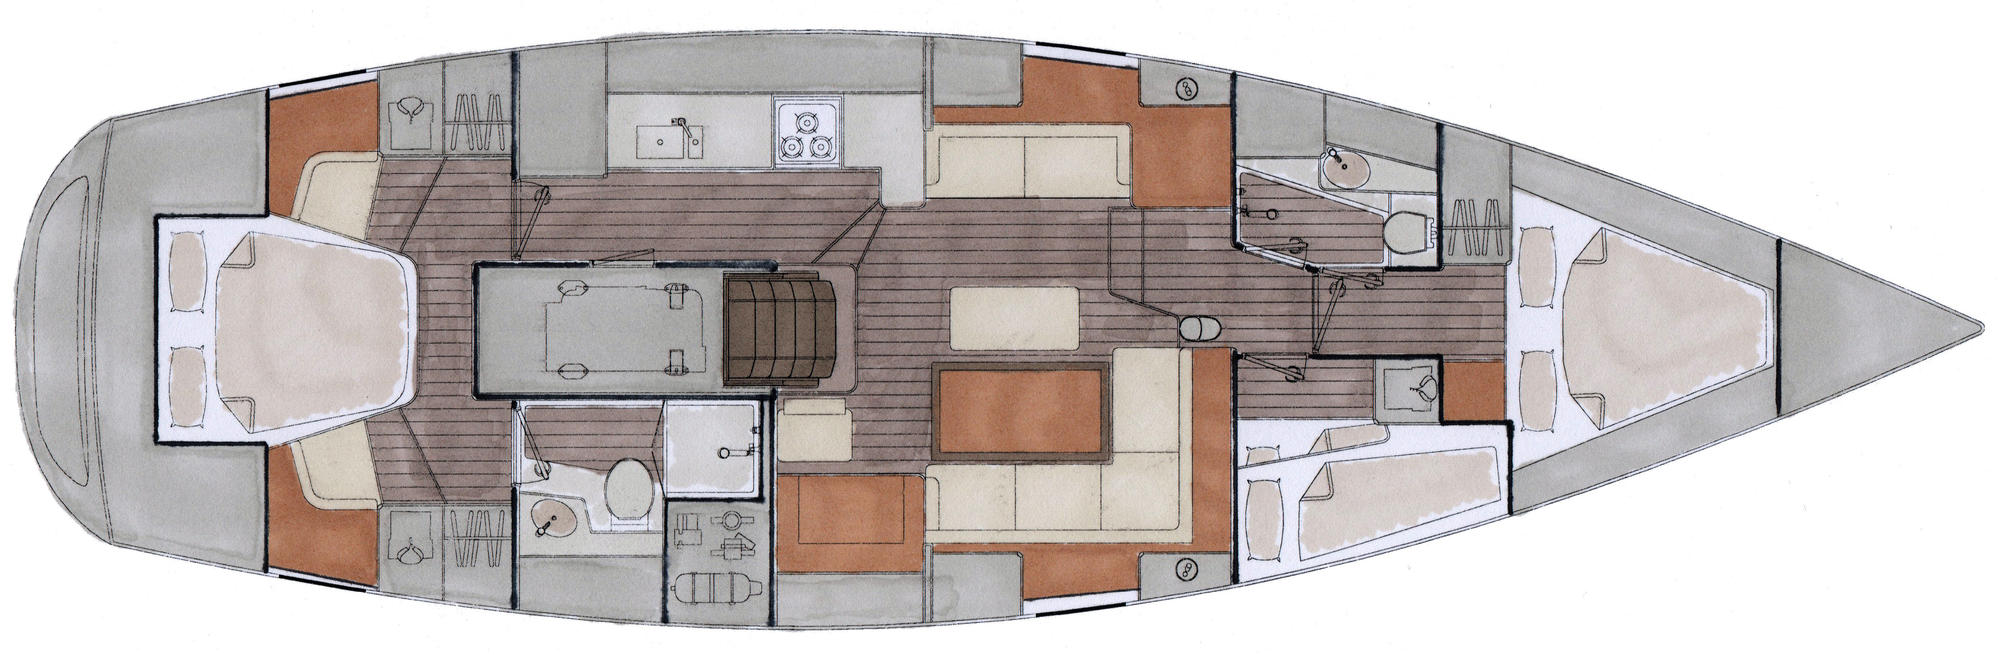 Conyplex Contest 50 CS - contest_50cs_interior_layout_a.jpg